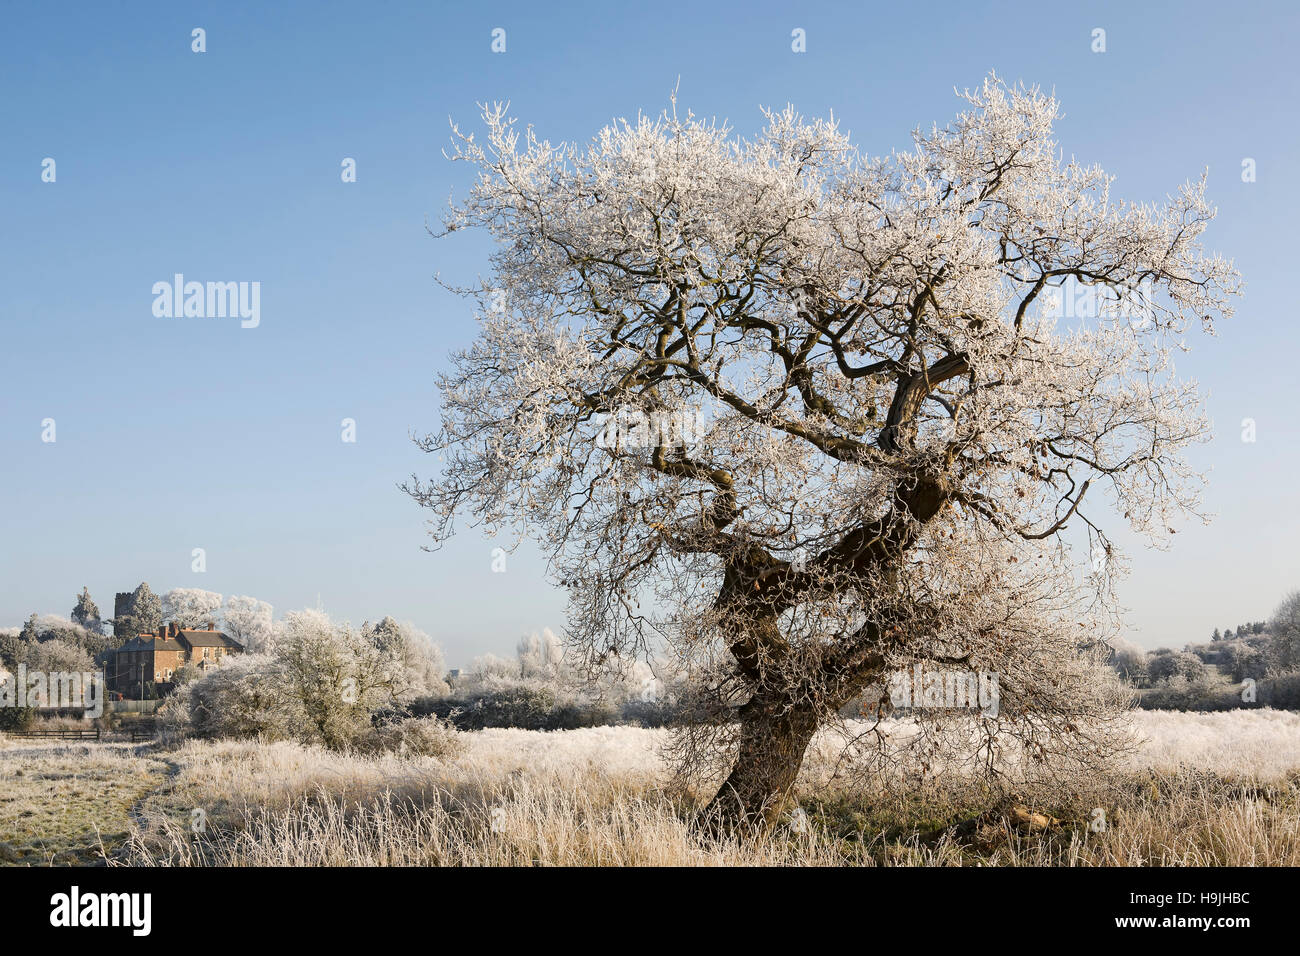 Frost covered tree and Croft church in the background - Stock Image